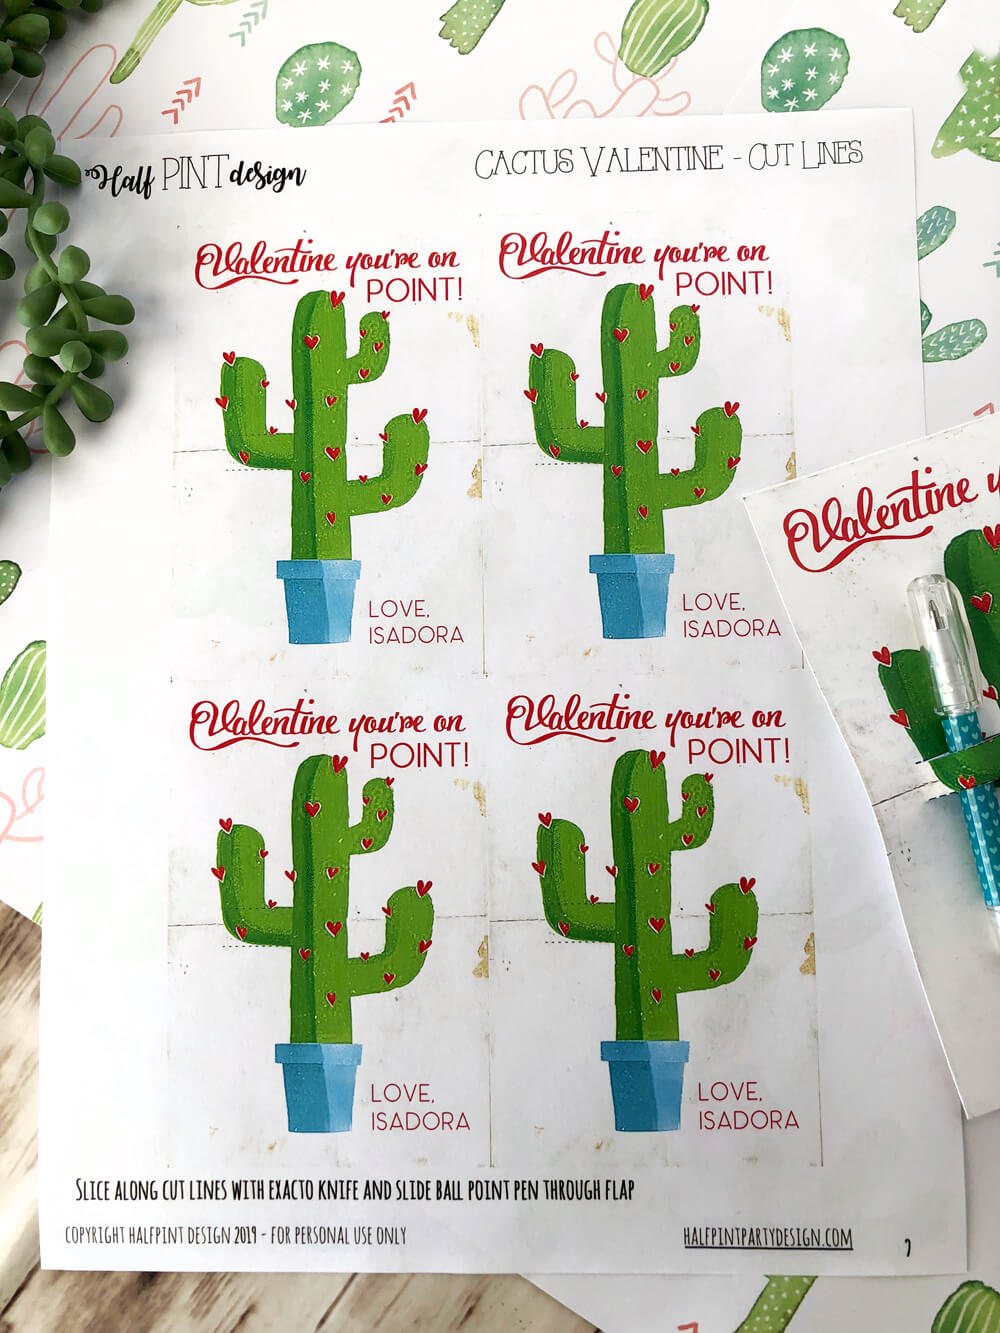 Printable sheet of cactus valentines day cards for download